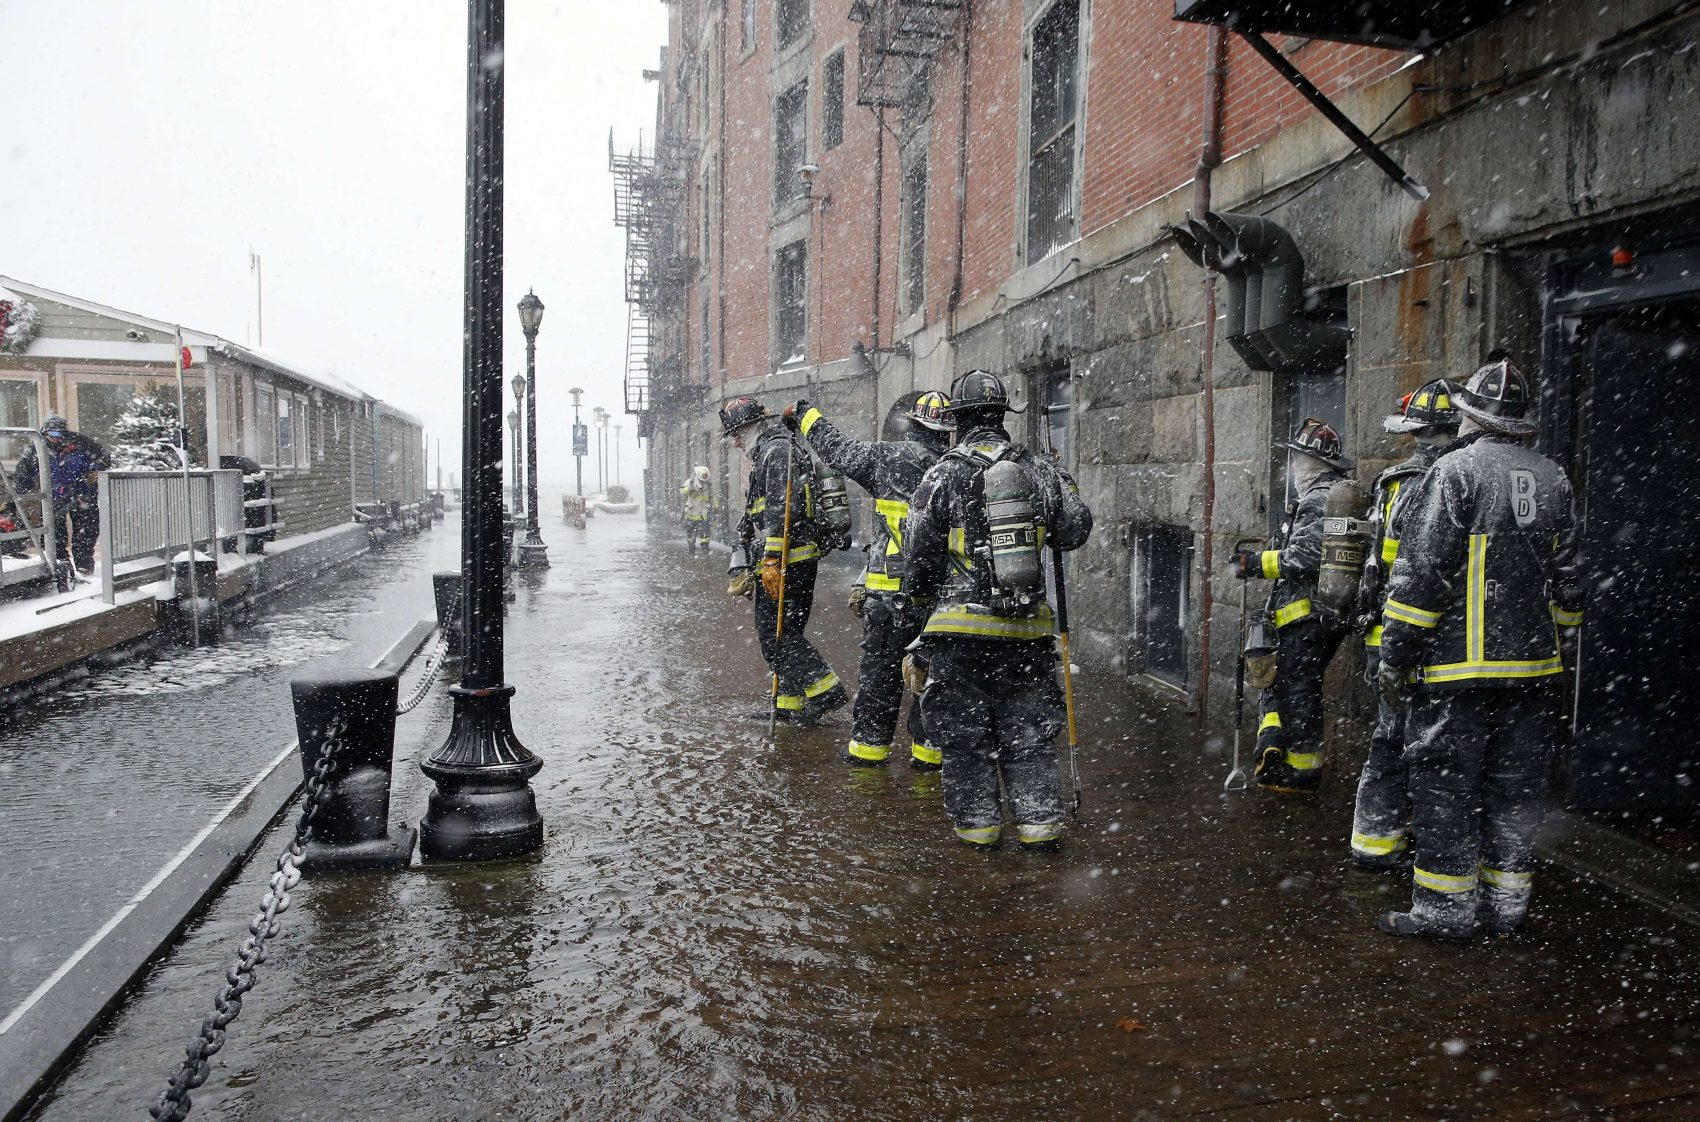 Boston firefighters work at the scene of flooding from Boston Harbor on Long Wharf in Boston, Jan. 4, 2018. (Michael Dwyer/AP)